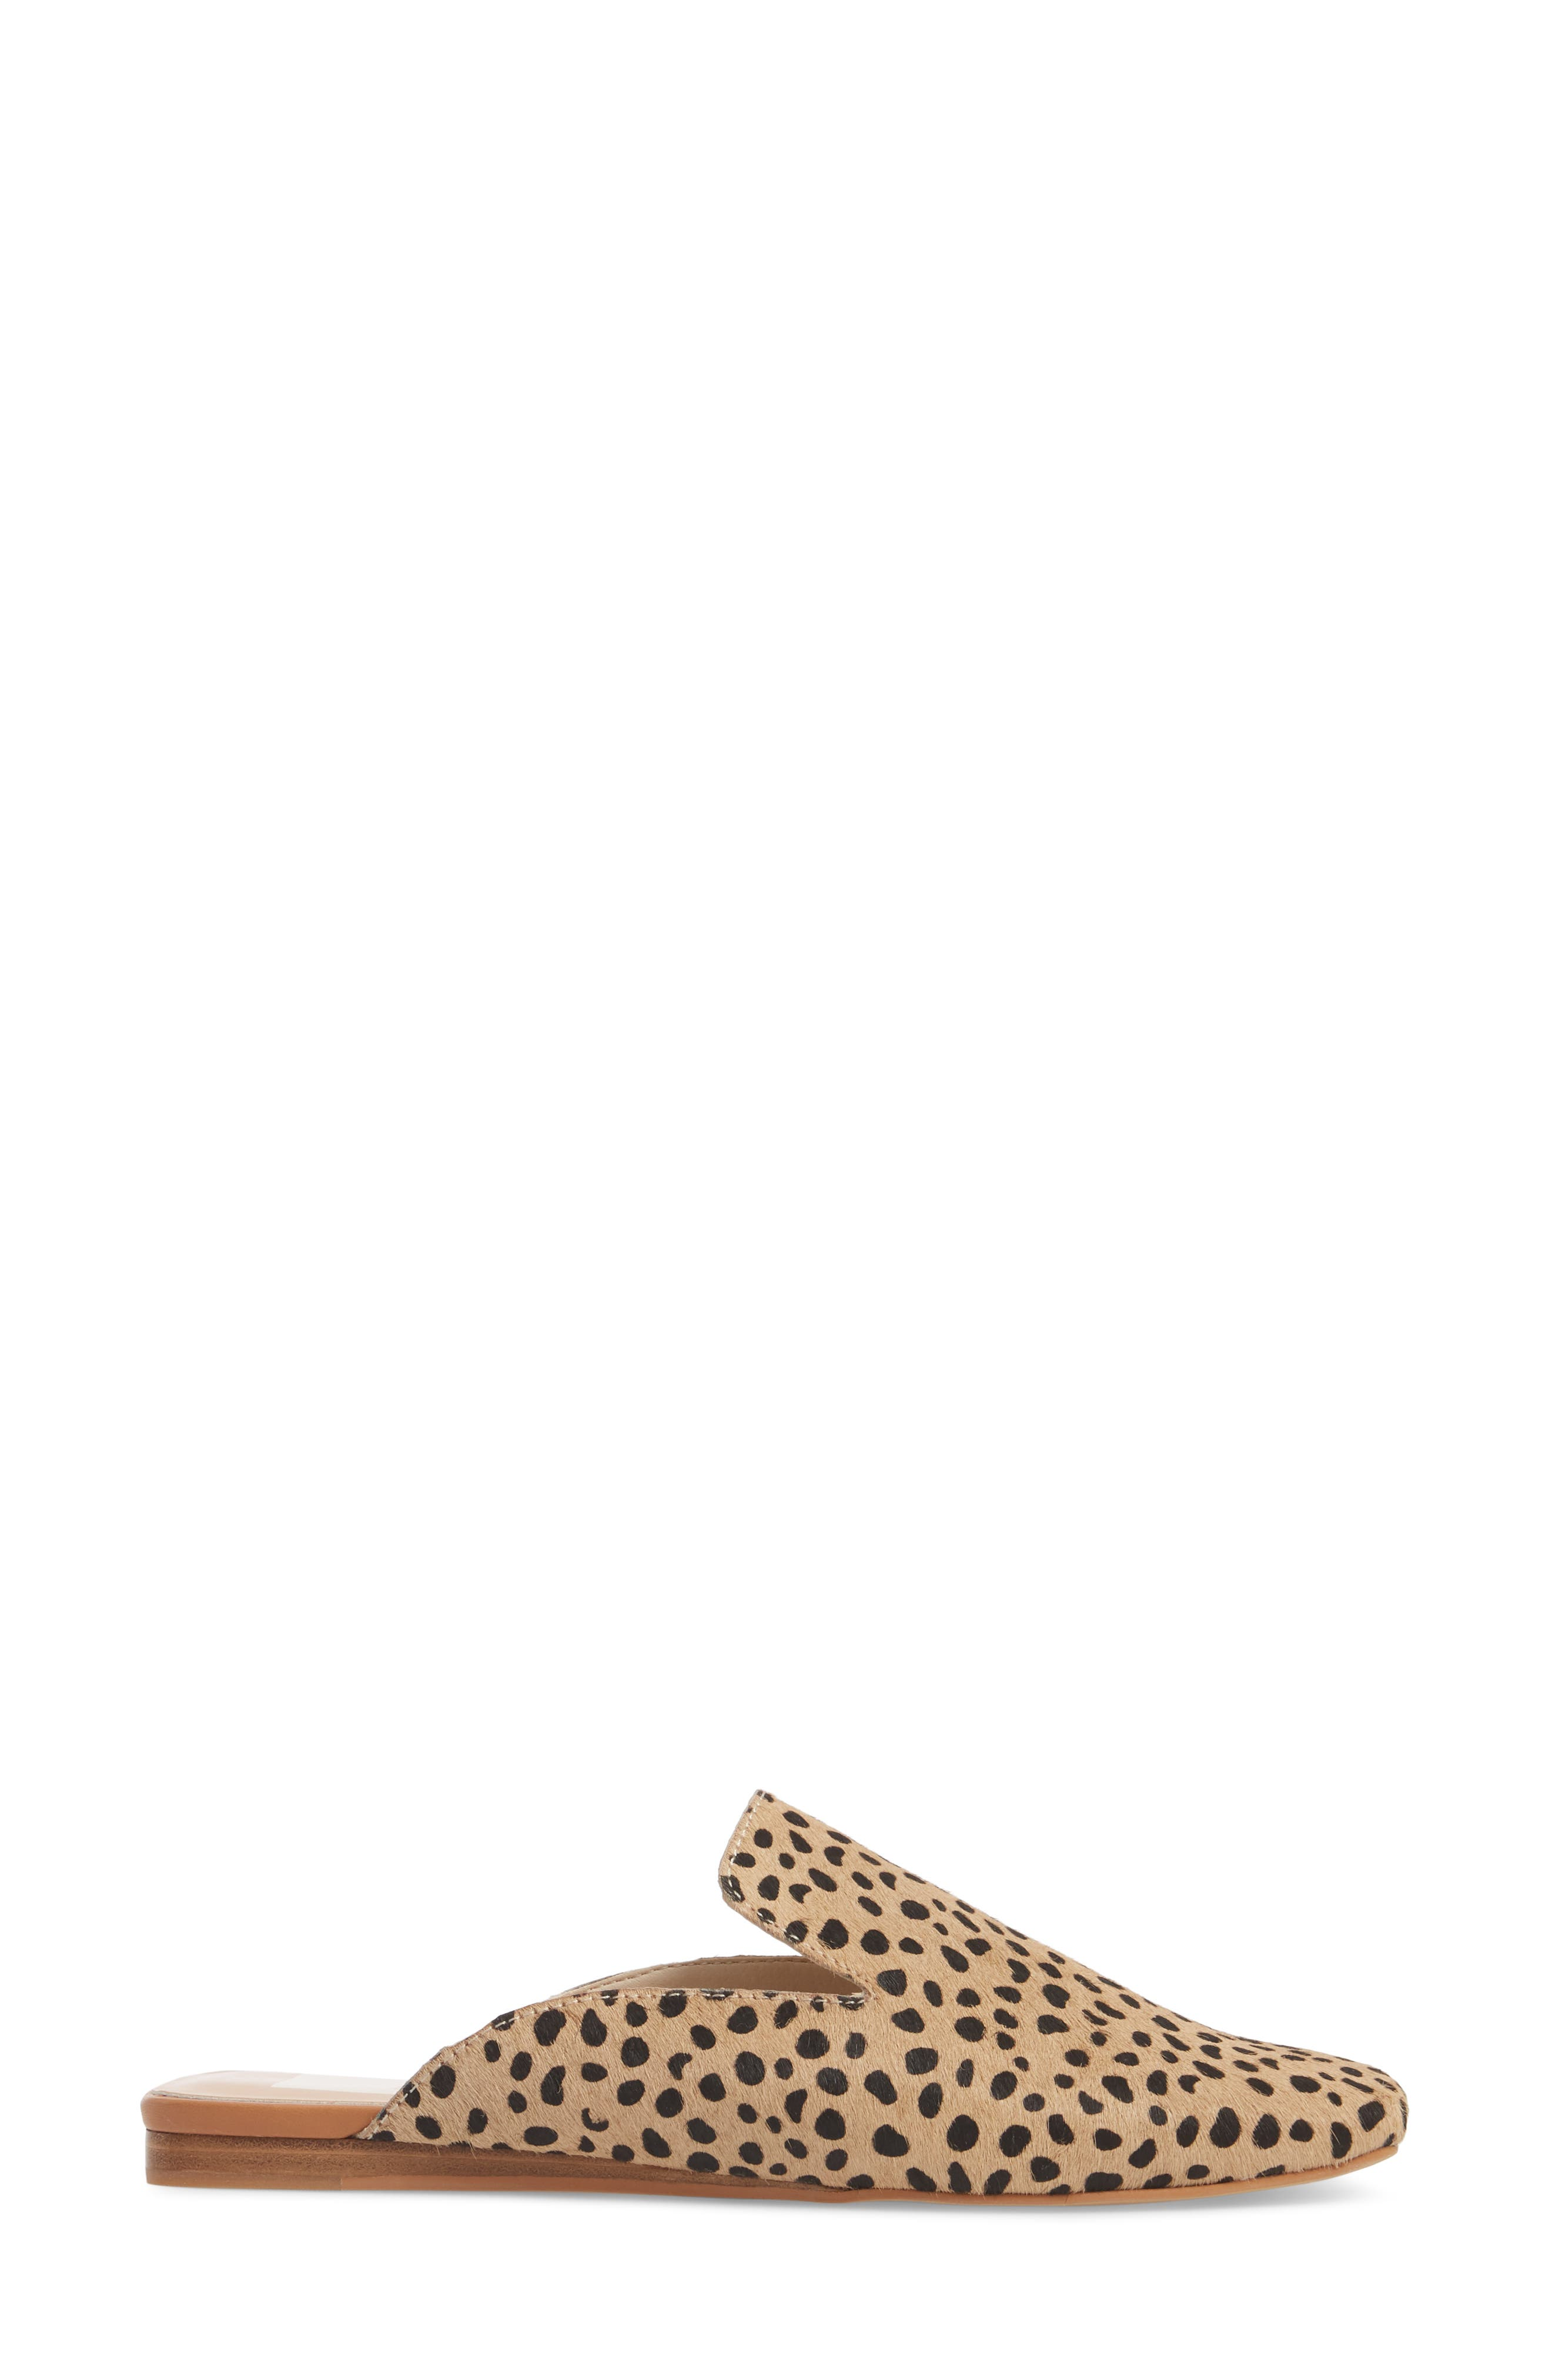 Brie Flat Mule,                             Alternate thumbnail 3, color,                             LEOPARD CALF HAIR